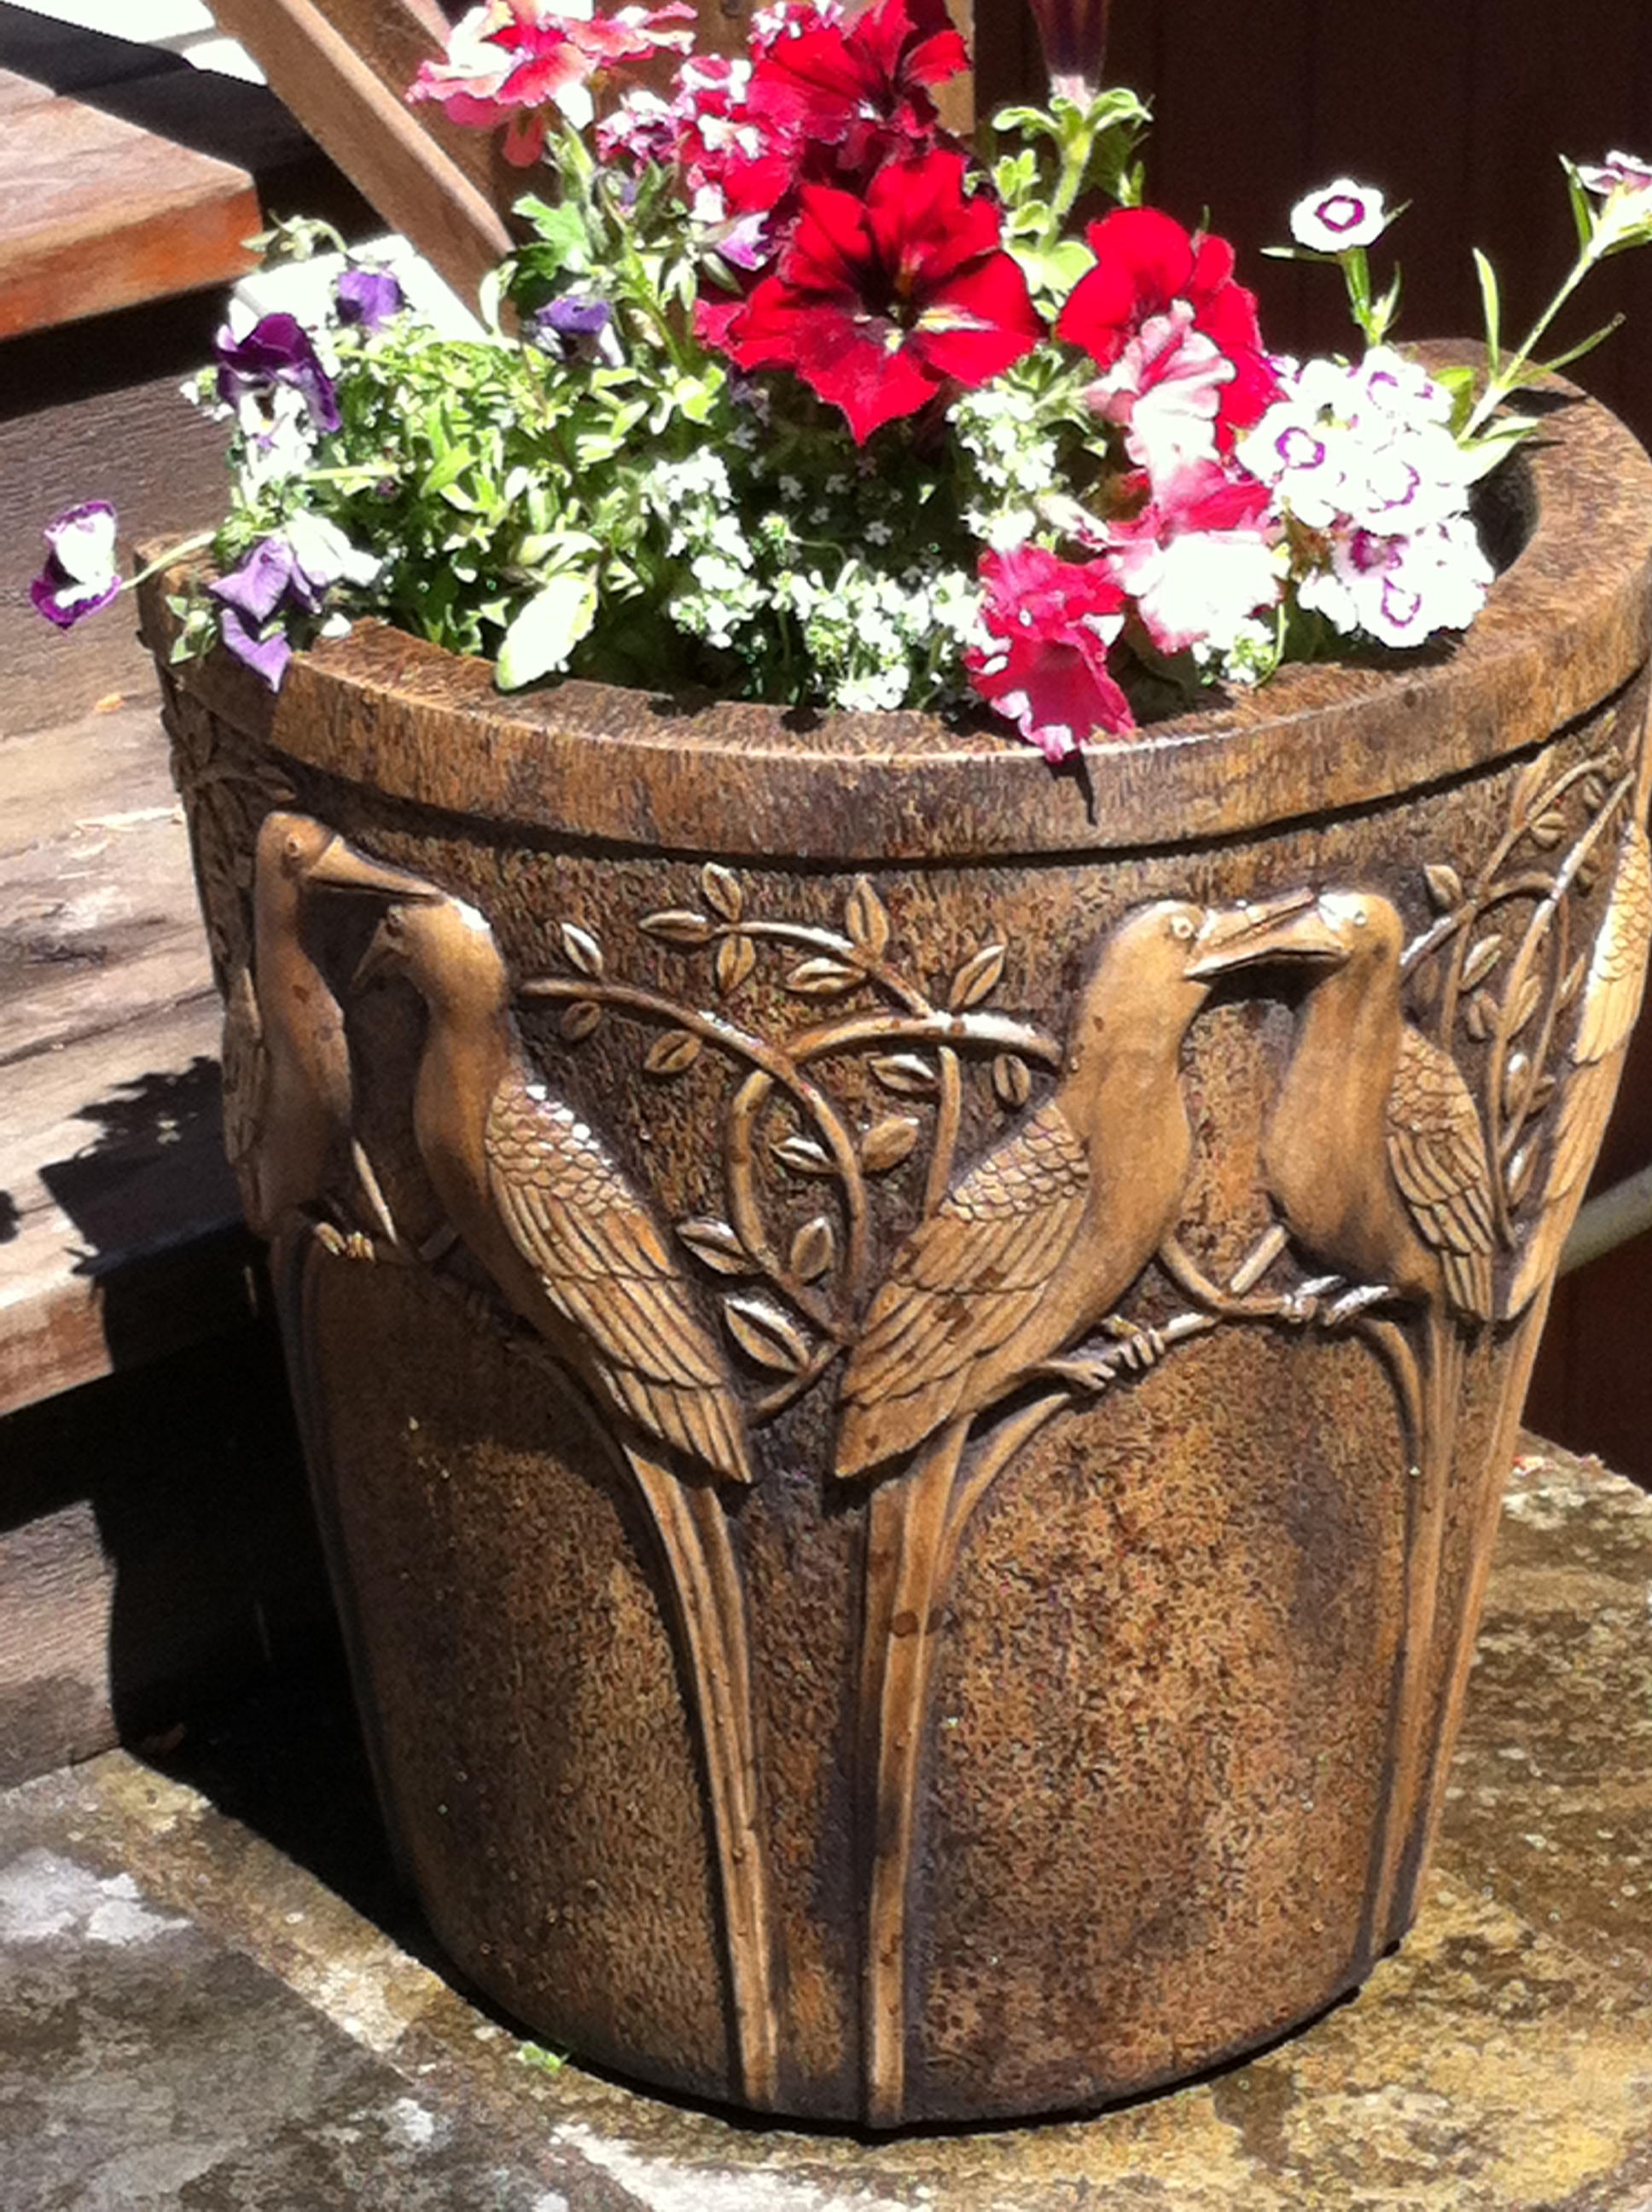 Birds of Paradise Pot holder acid stained concrete planter for outdoor garden or patio